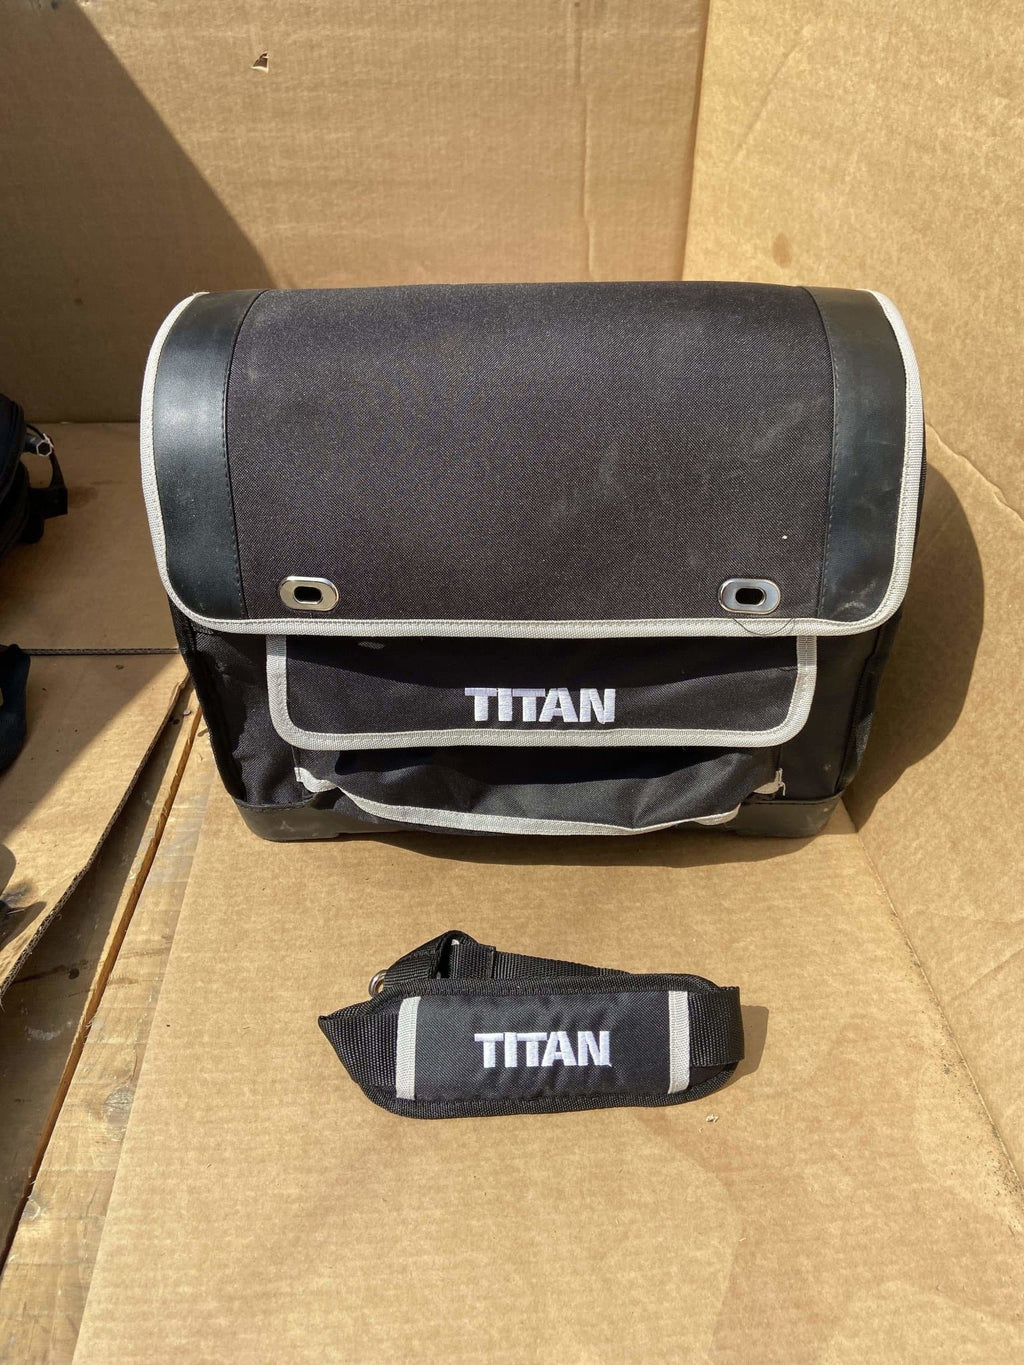 Titan 40cc/50cc Petrol Chainsaw Carry Case Bag With Shoulder Strap - Discounted Deals UK